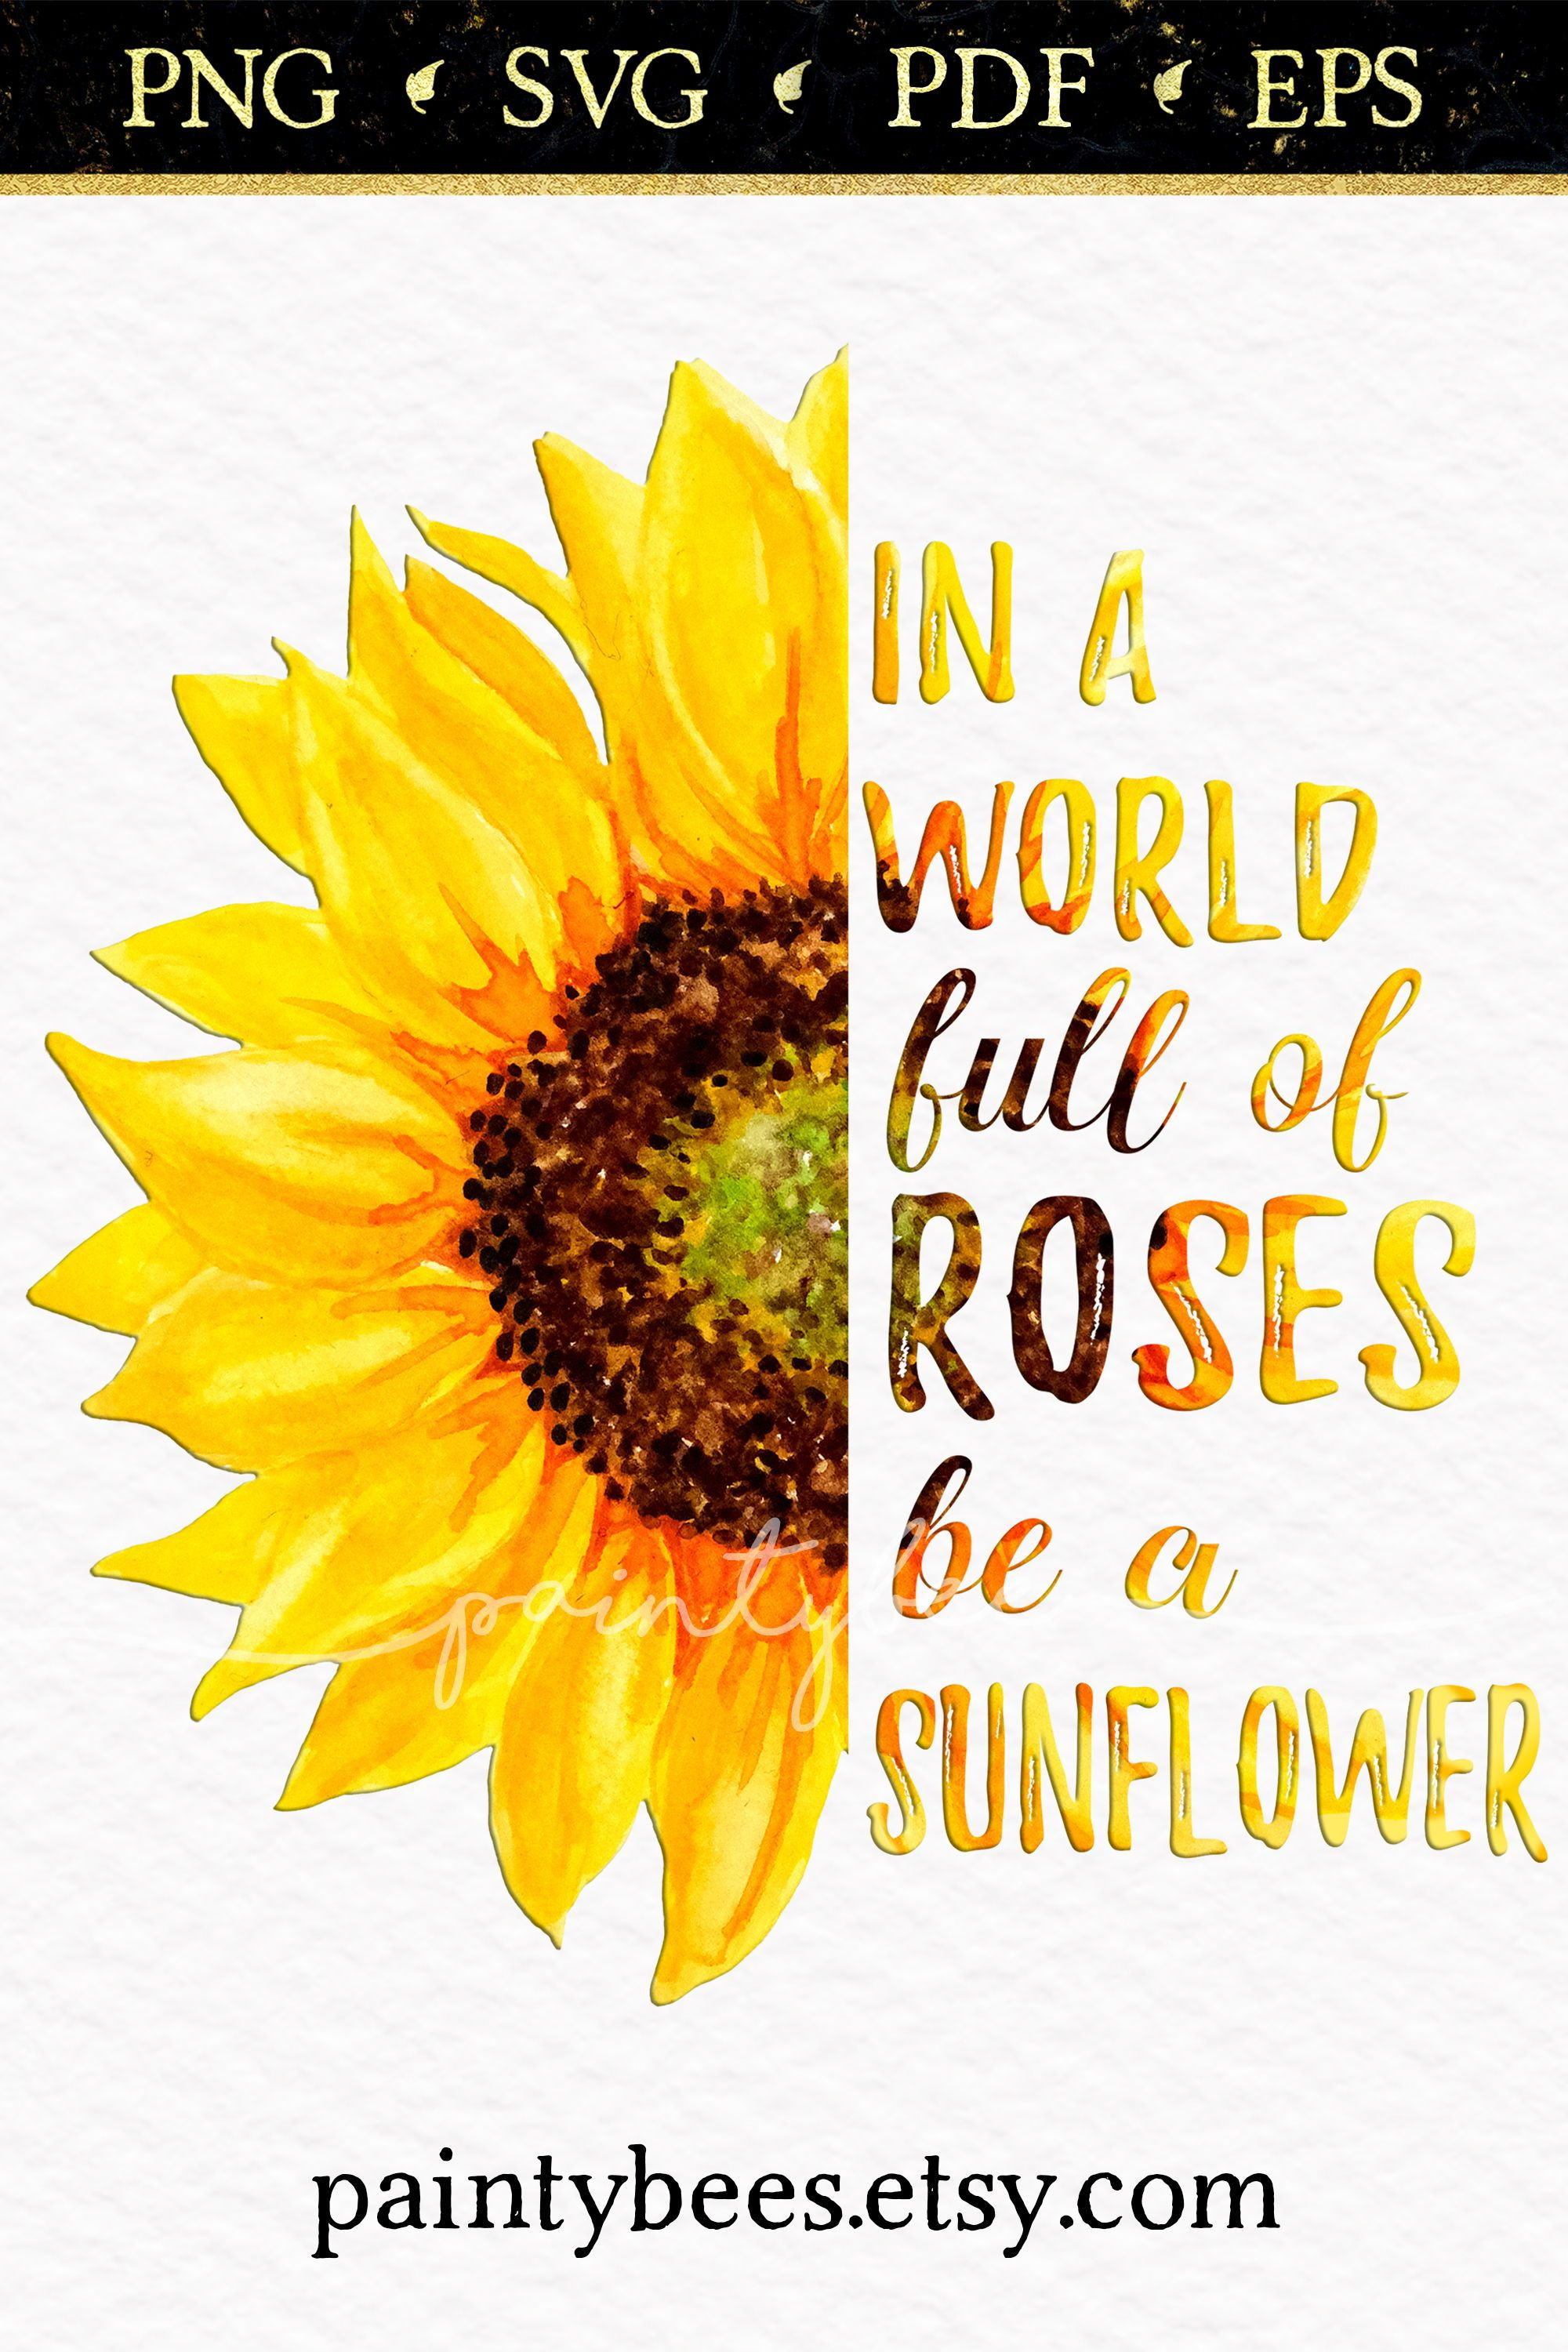 In A World Full of Roses Be A Sunflower SVG, 500 DPI High